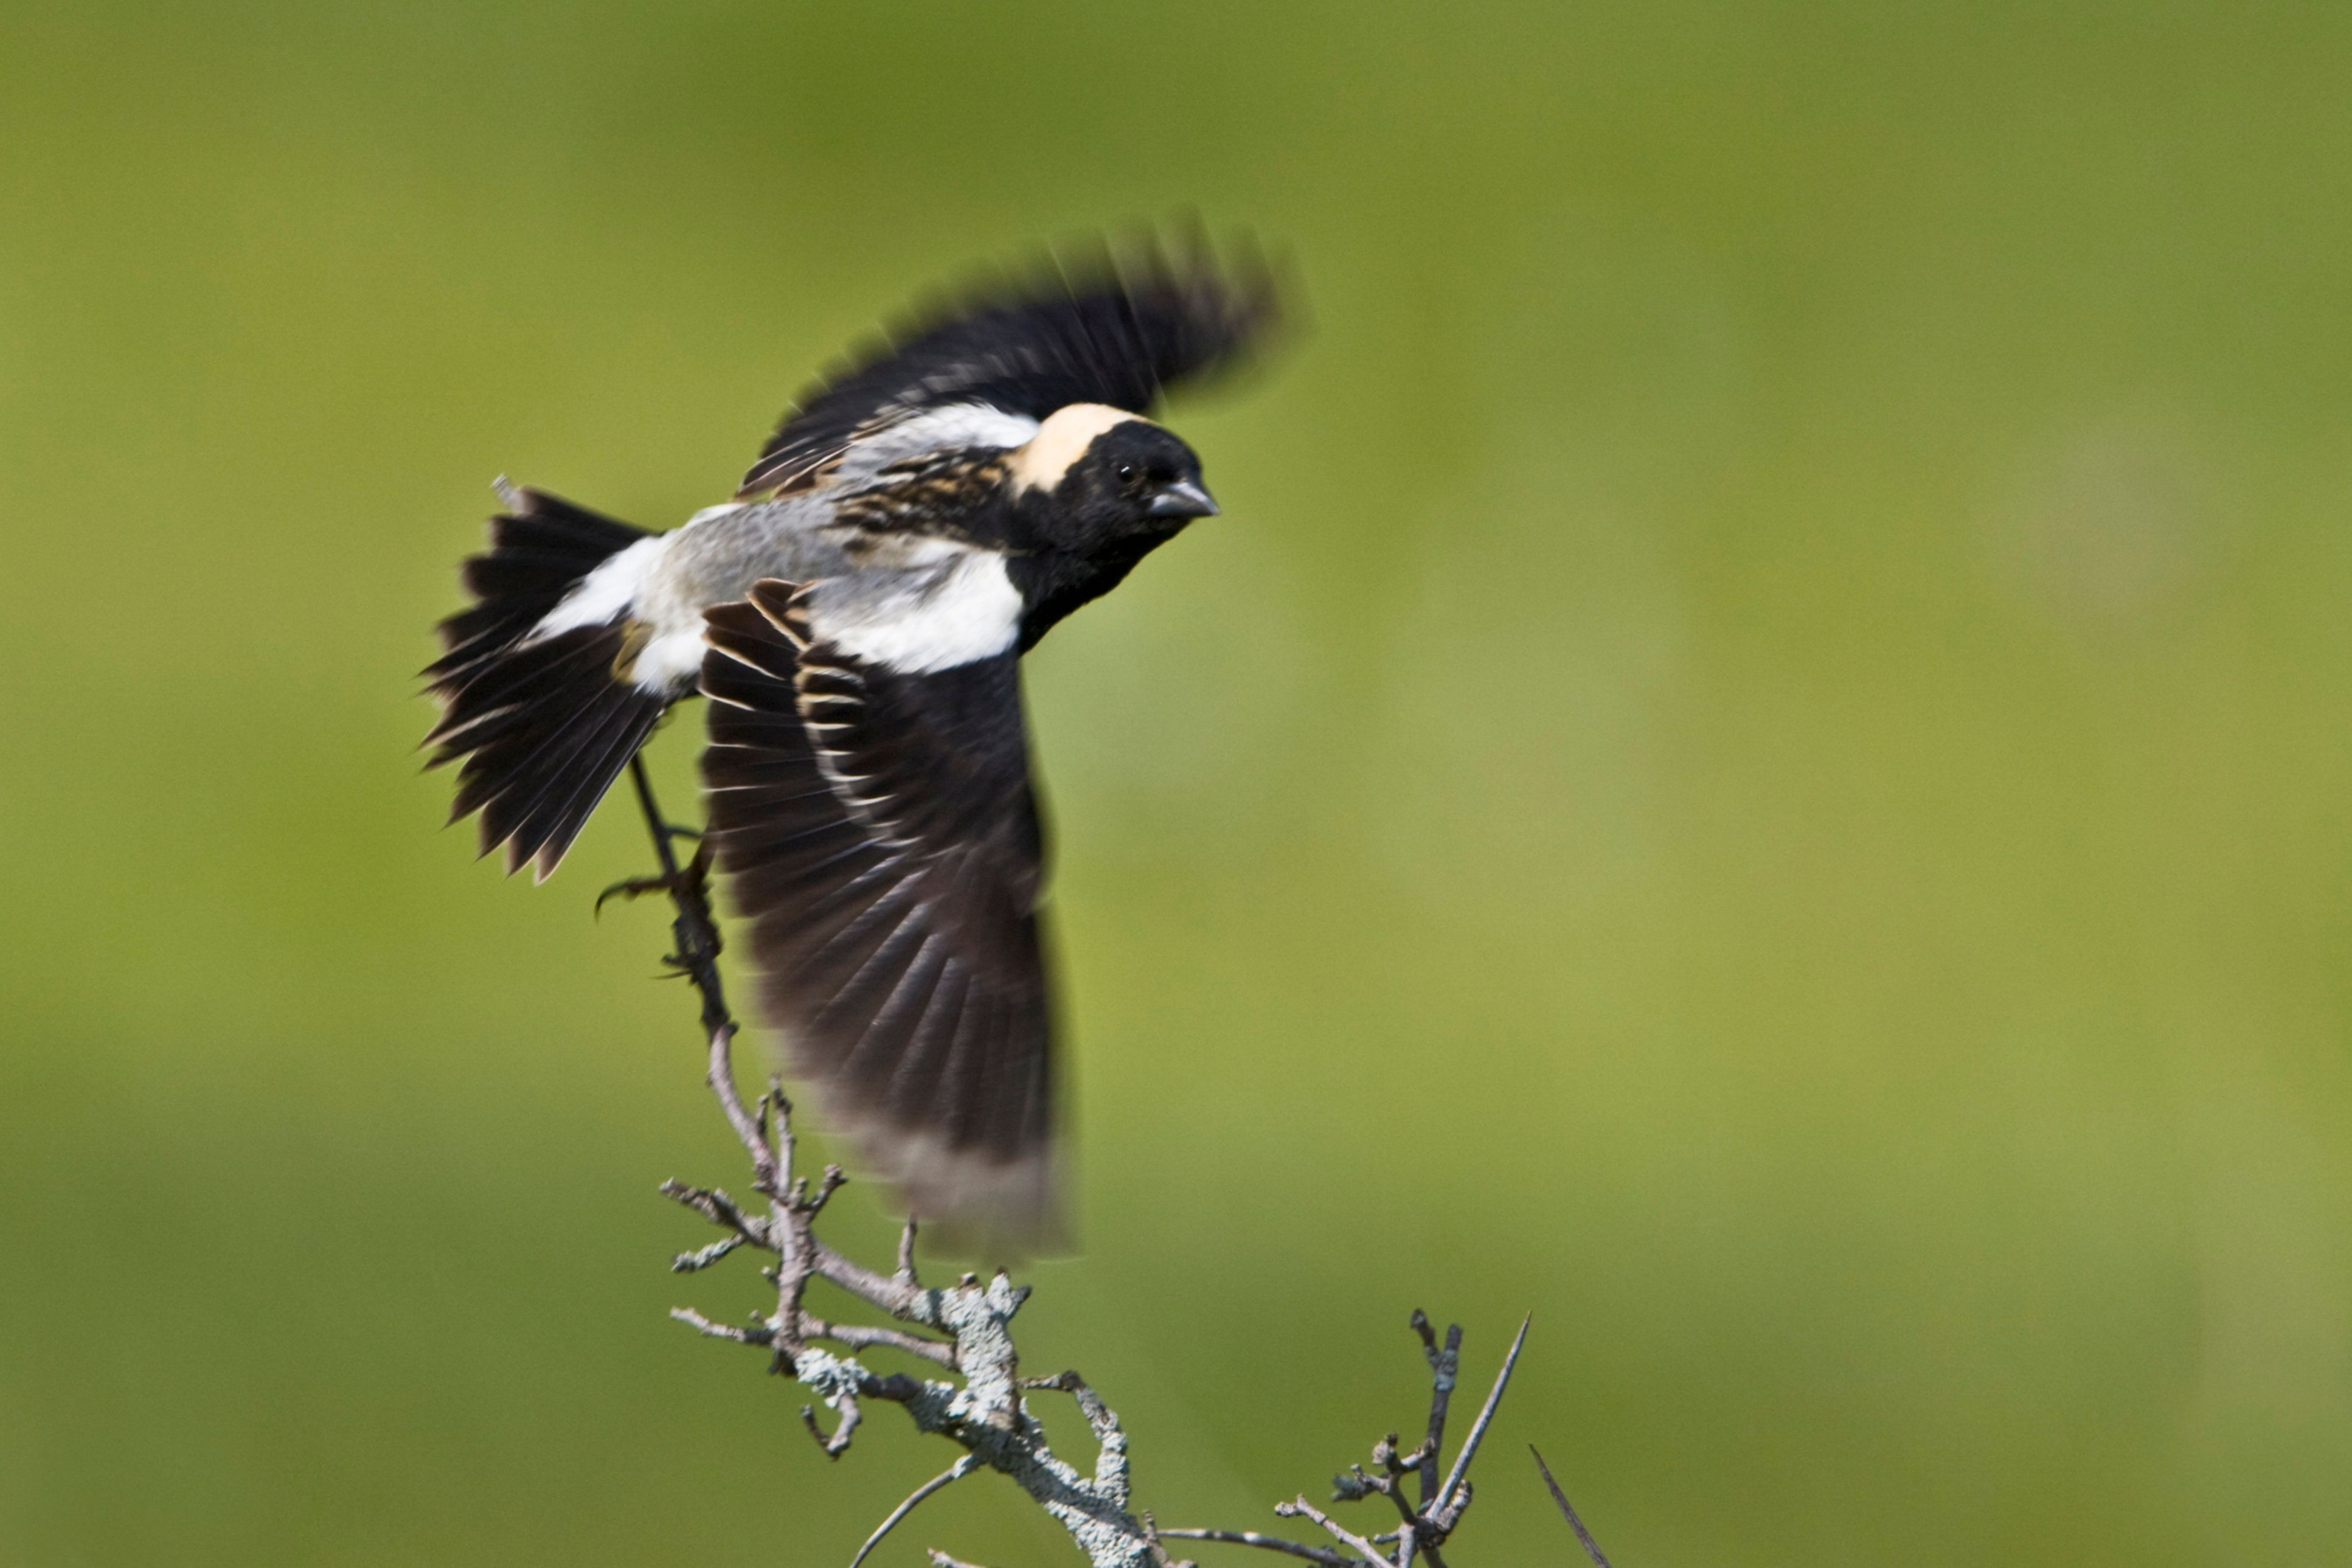 Visuals Unlimited Inc./Glenn Bartley via Getty Images A bobolink flying off a branch in Ontario Canada